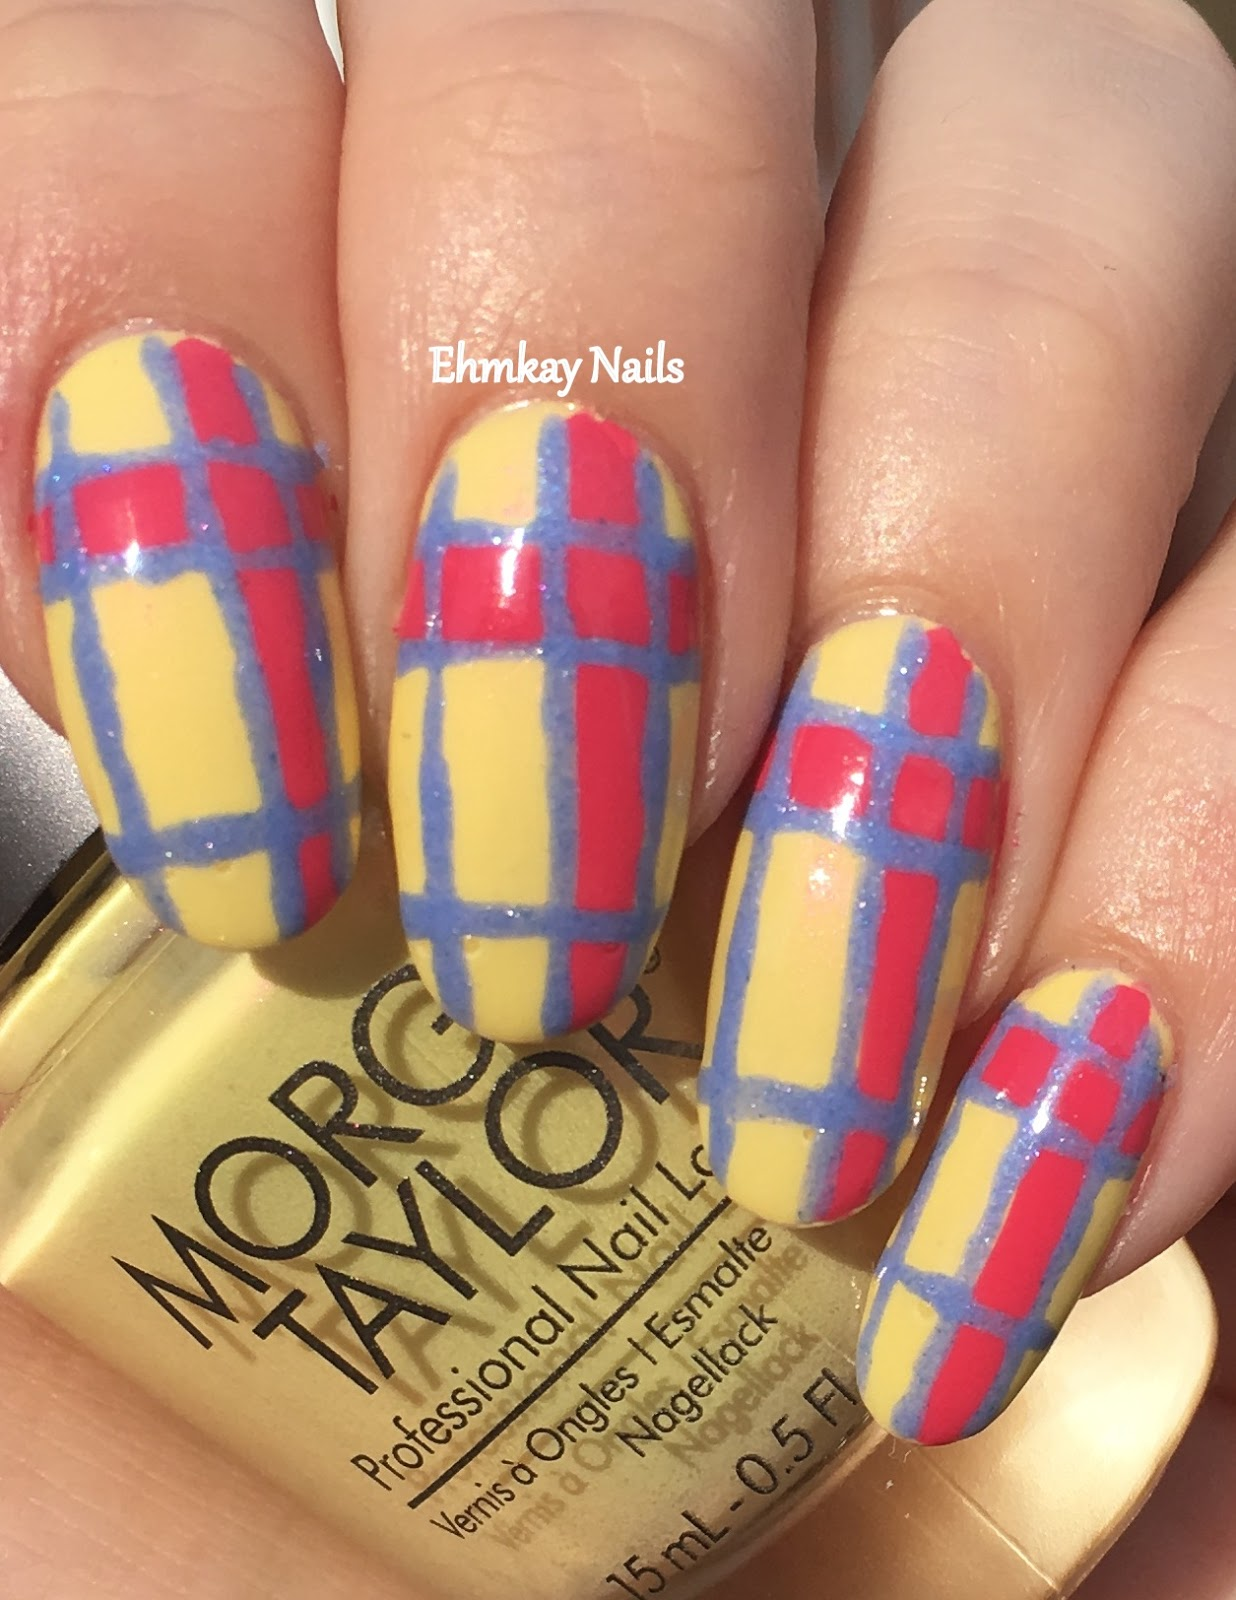 Ehmkay nails easter plaid nail art easter plaid nail art prinsesfo Choice Image